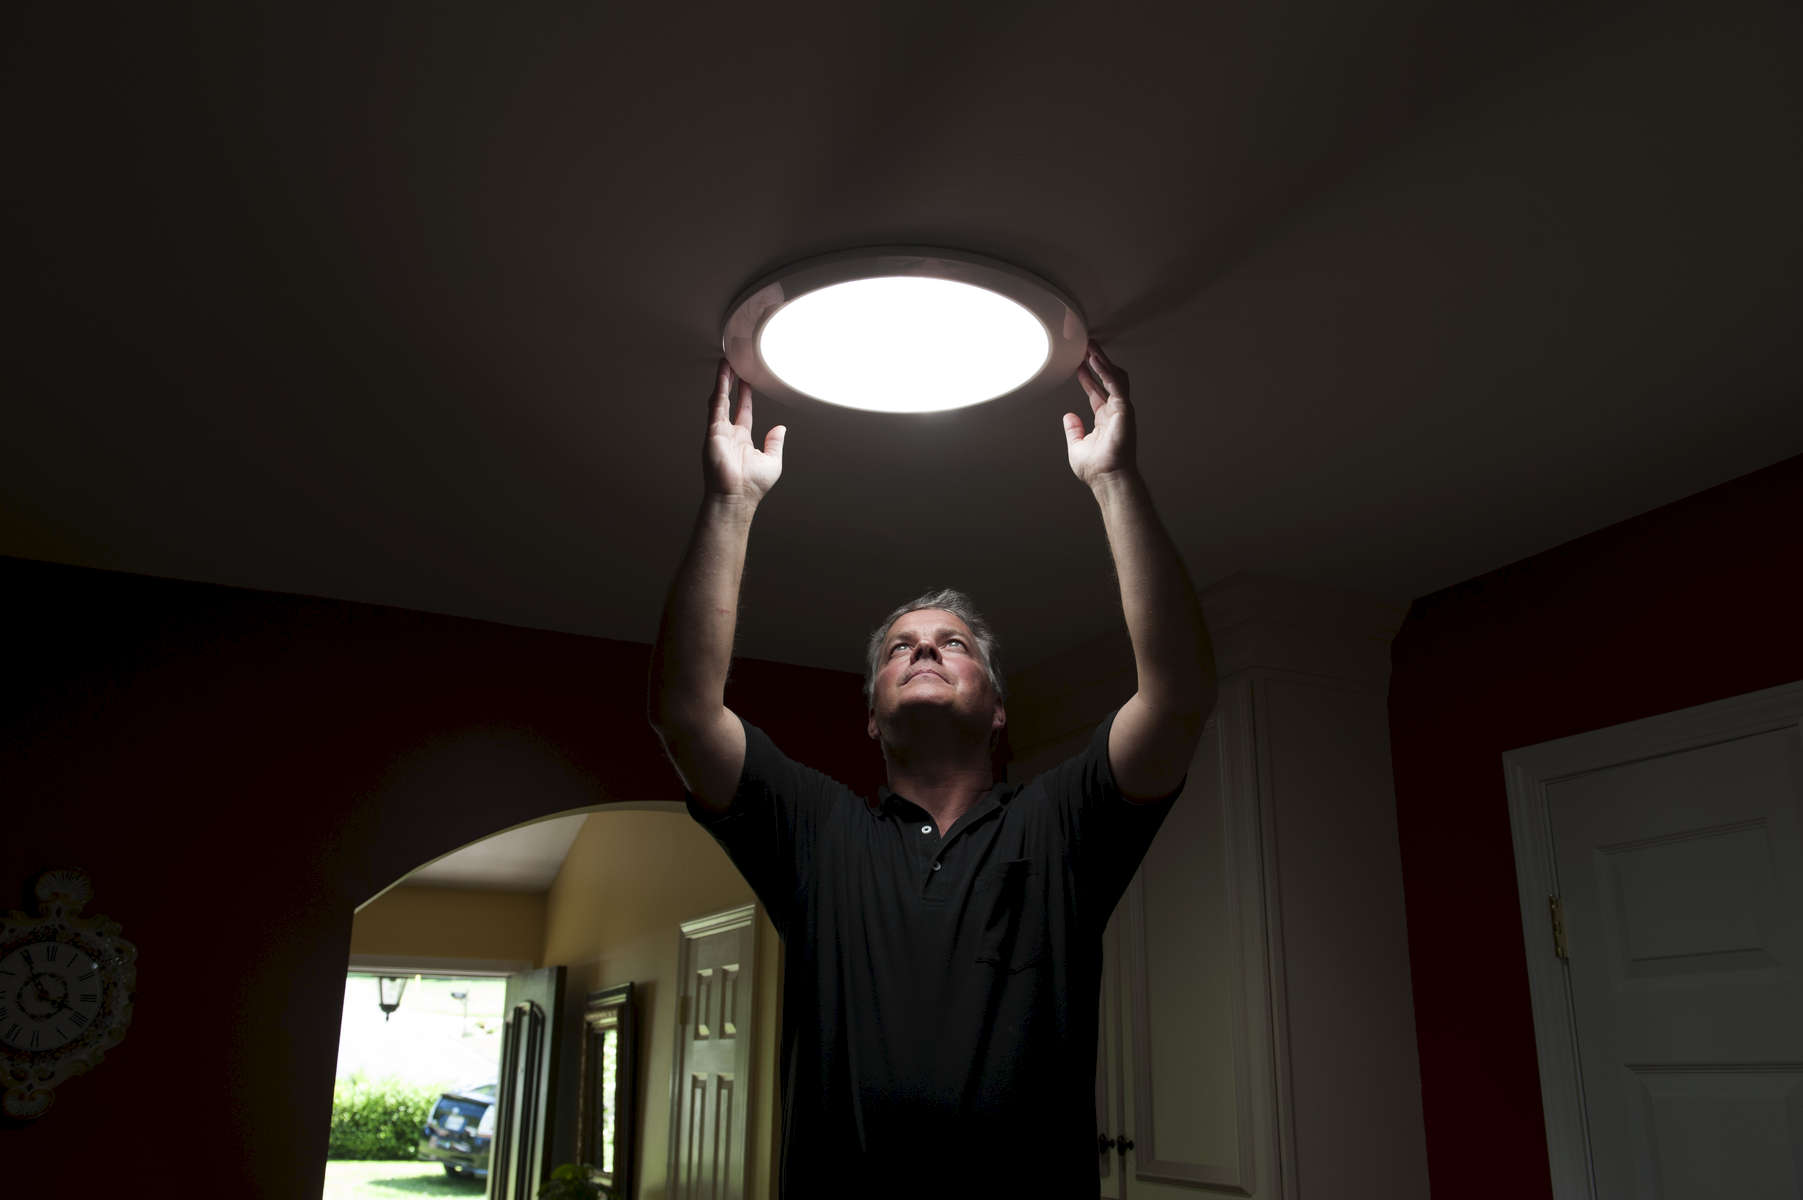 An advocate of energy efficiency installs skylight in his home to cut down on electricity use.